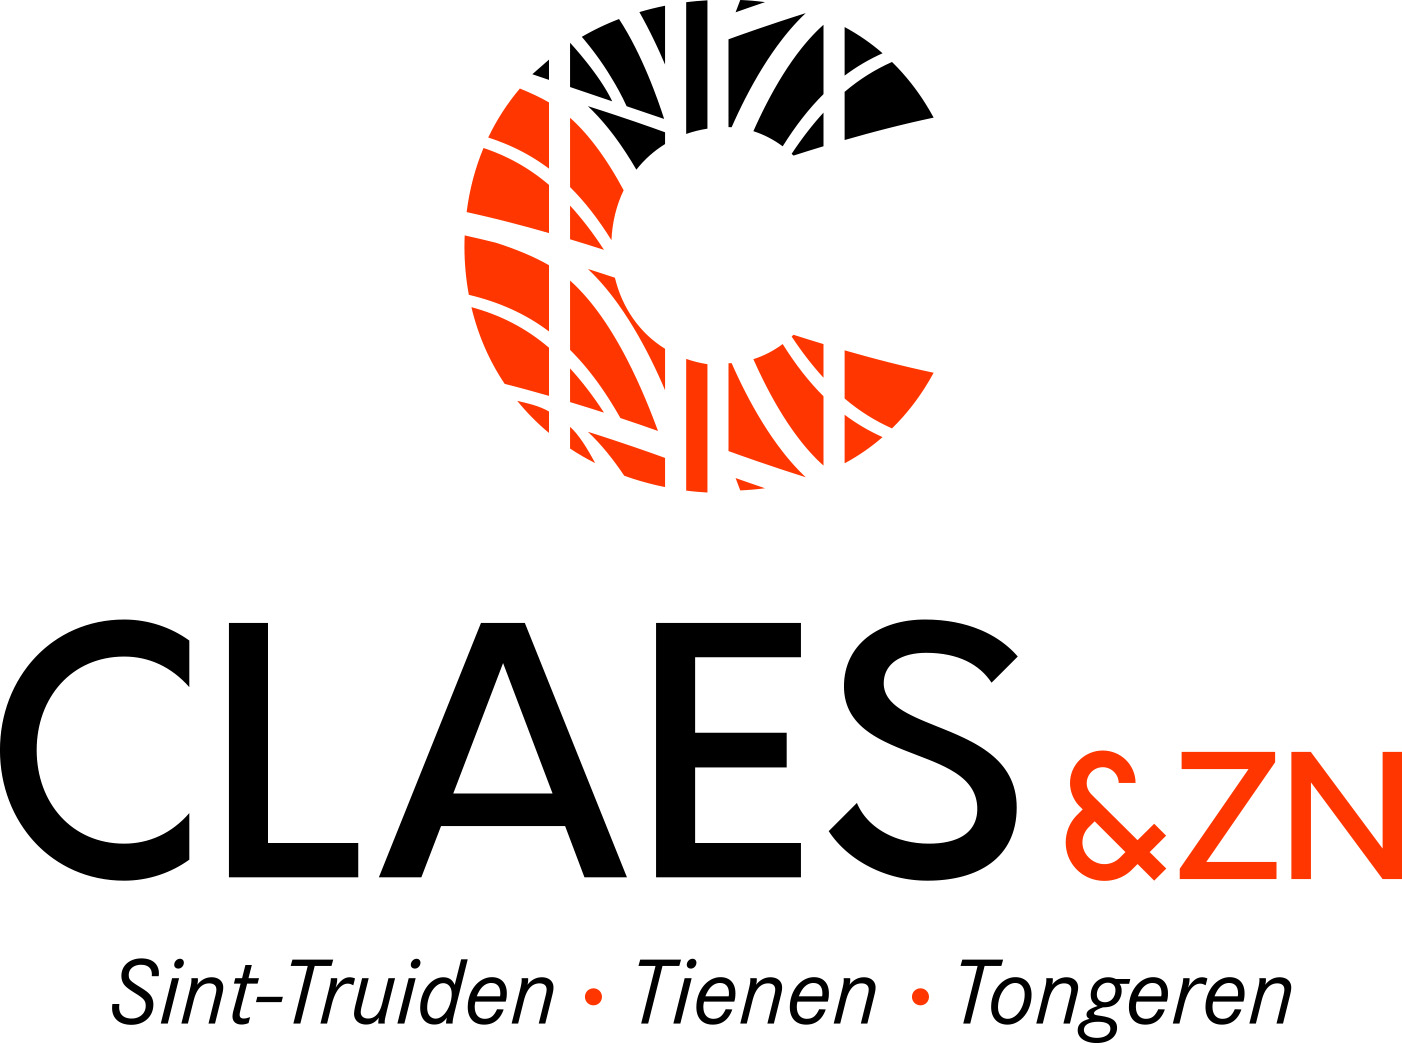 Claes & zonen